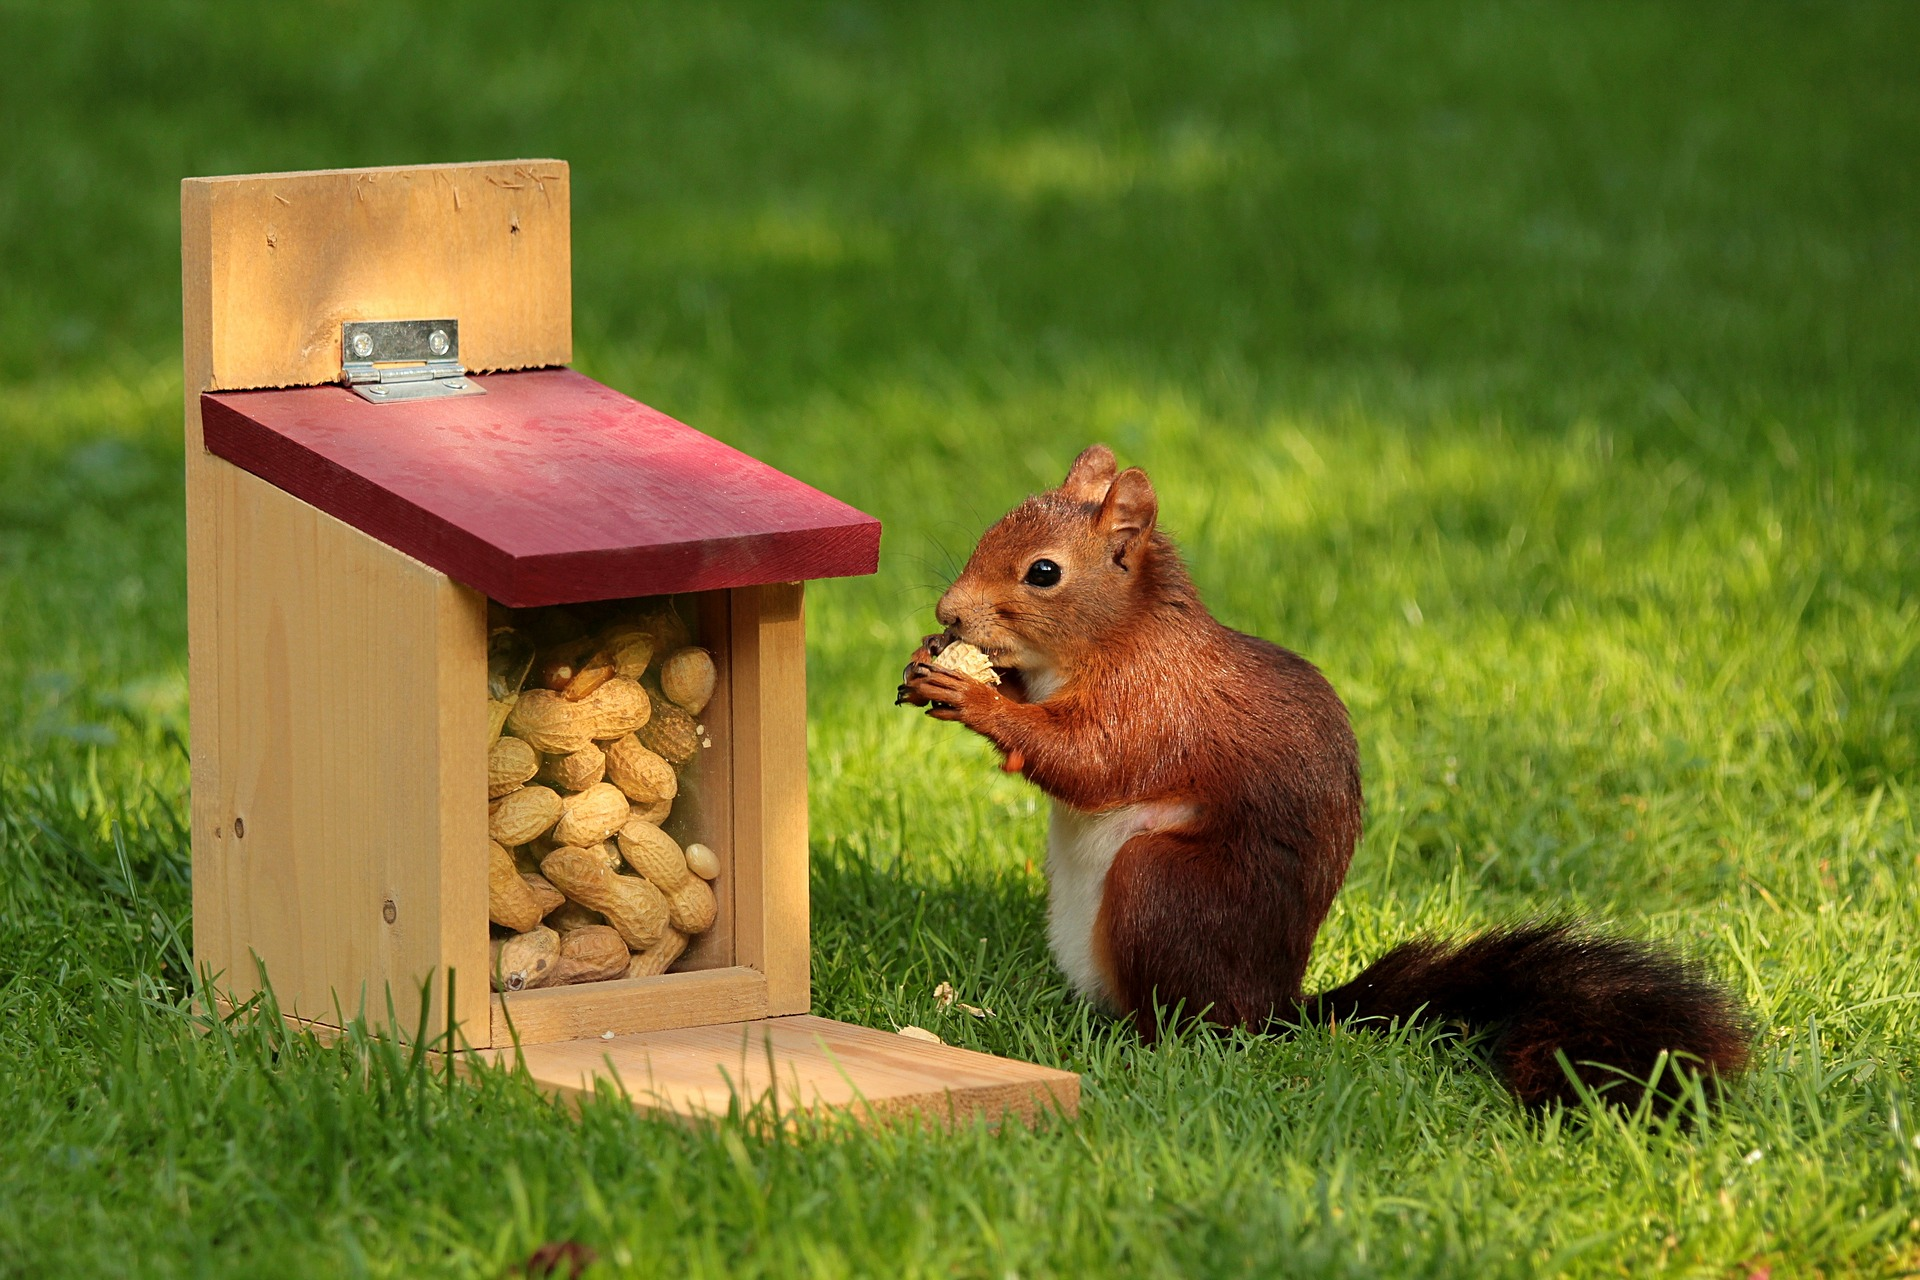 https://pixabay.com/en/animal-squirrel-sciurus-bird-meal-927904/